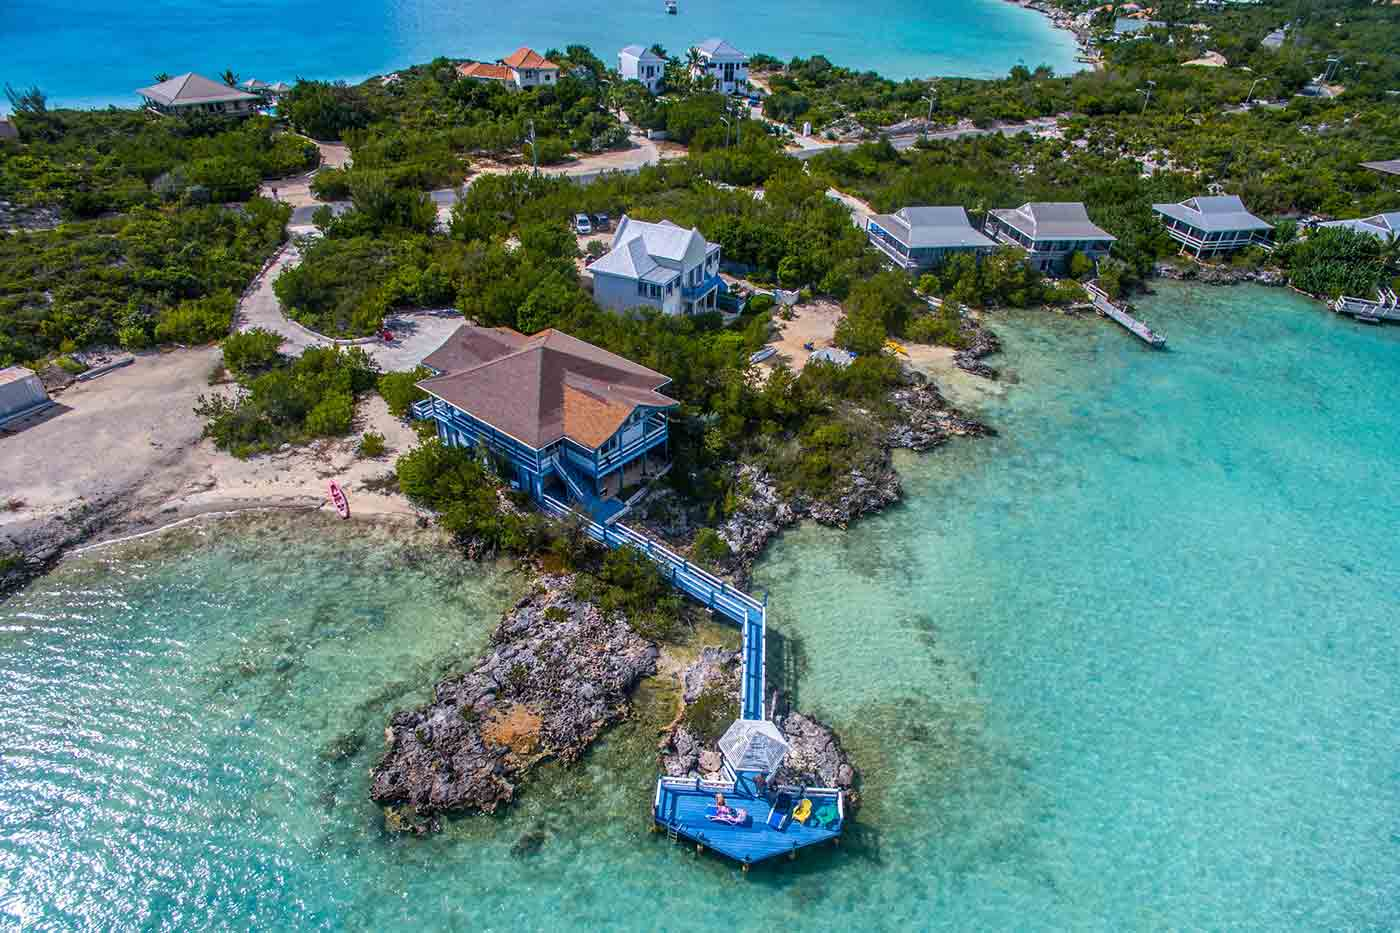 Aerial view of a blue beach house on the water